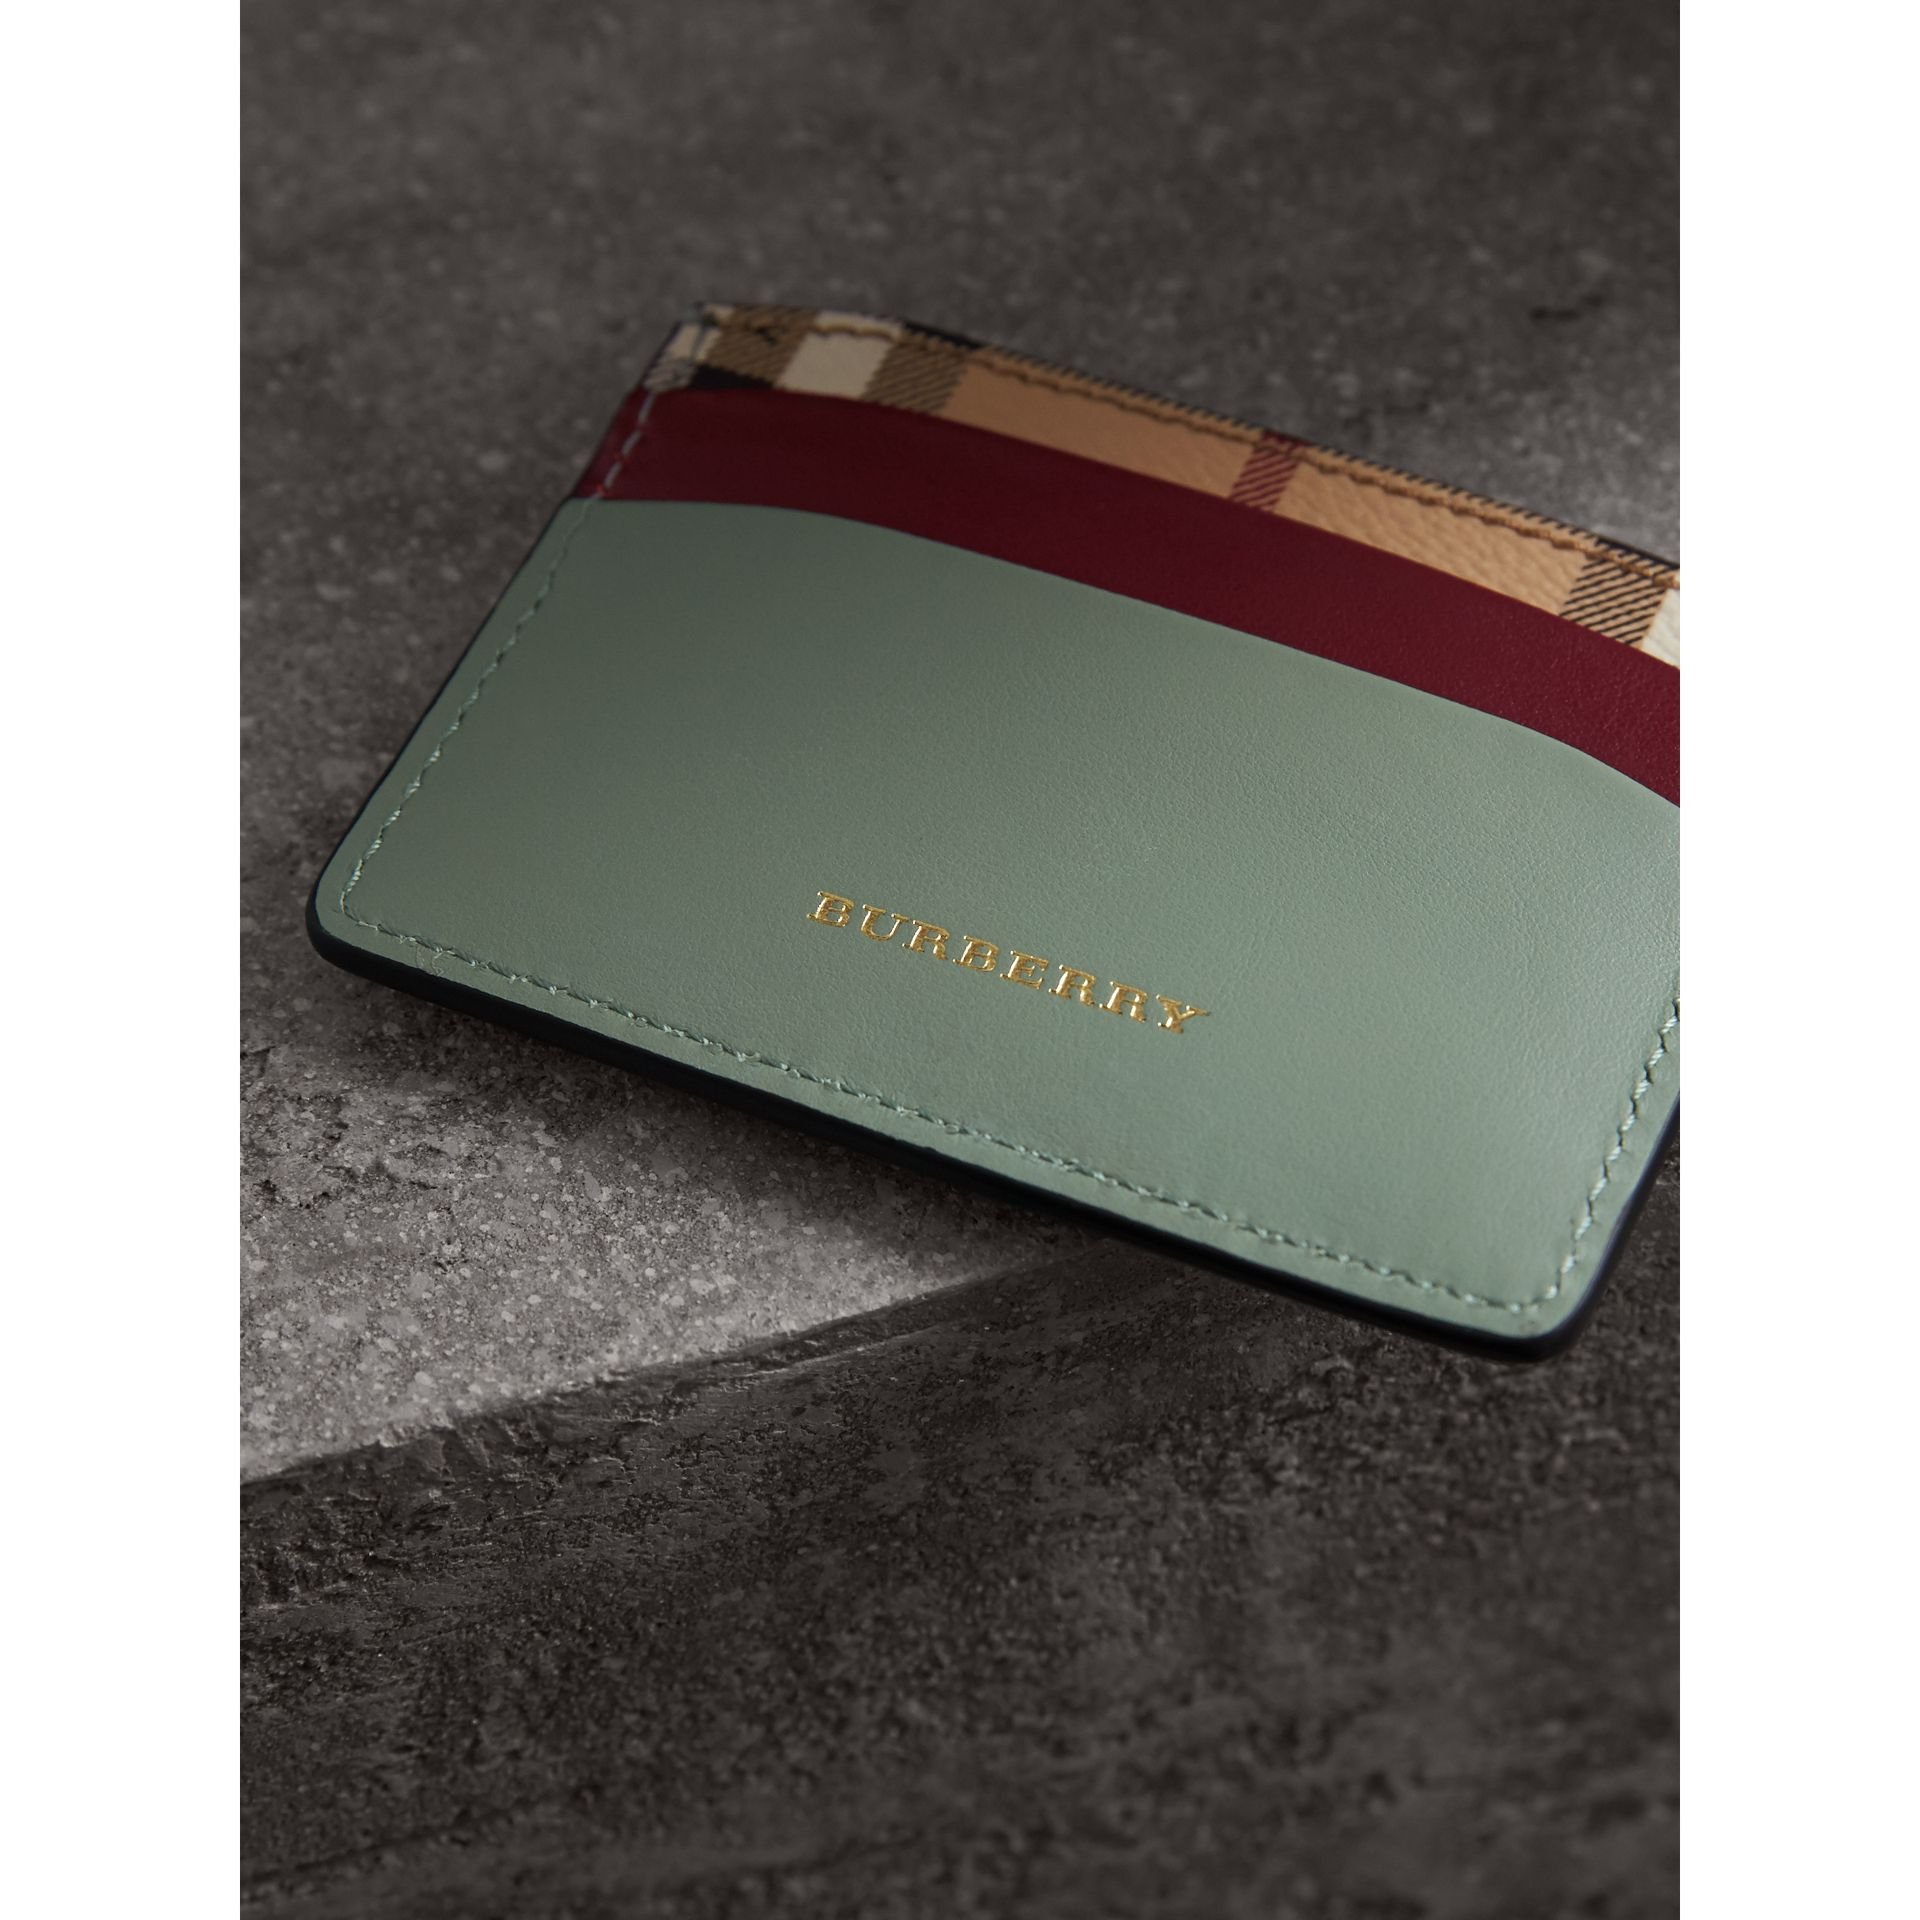 Beasts Motif Haymarket Check and Leather Card Case in Celadon Green - Women | Burberry - gallery image 1